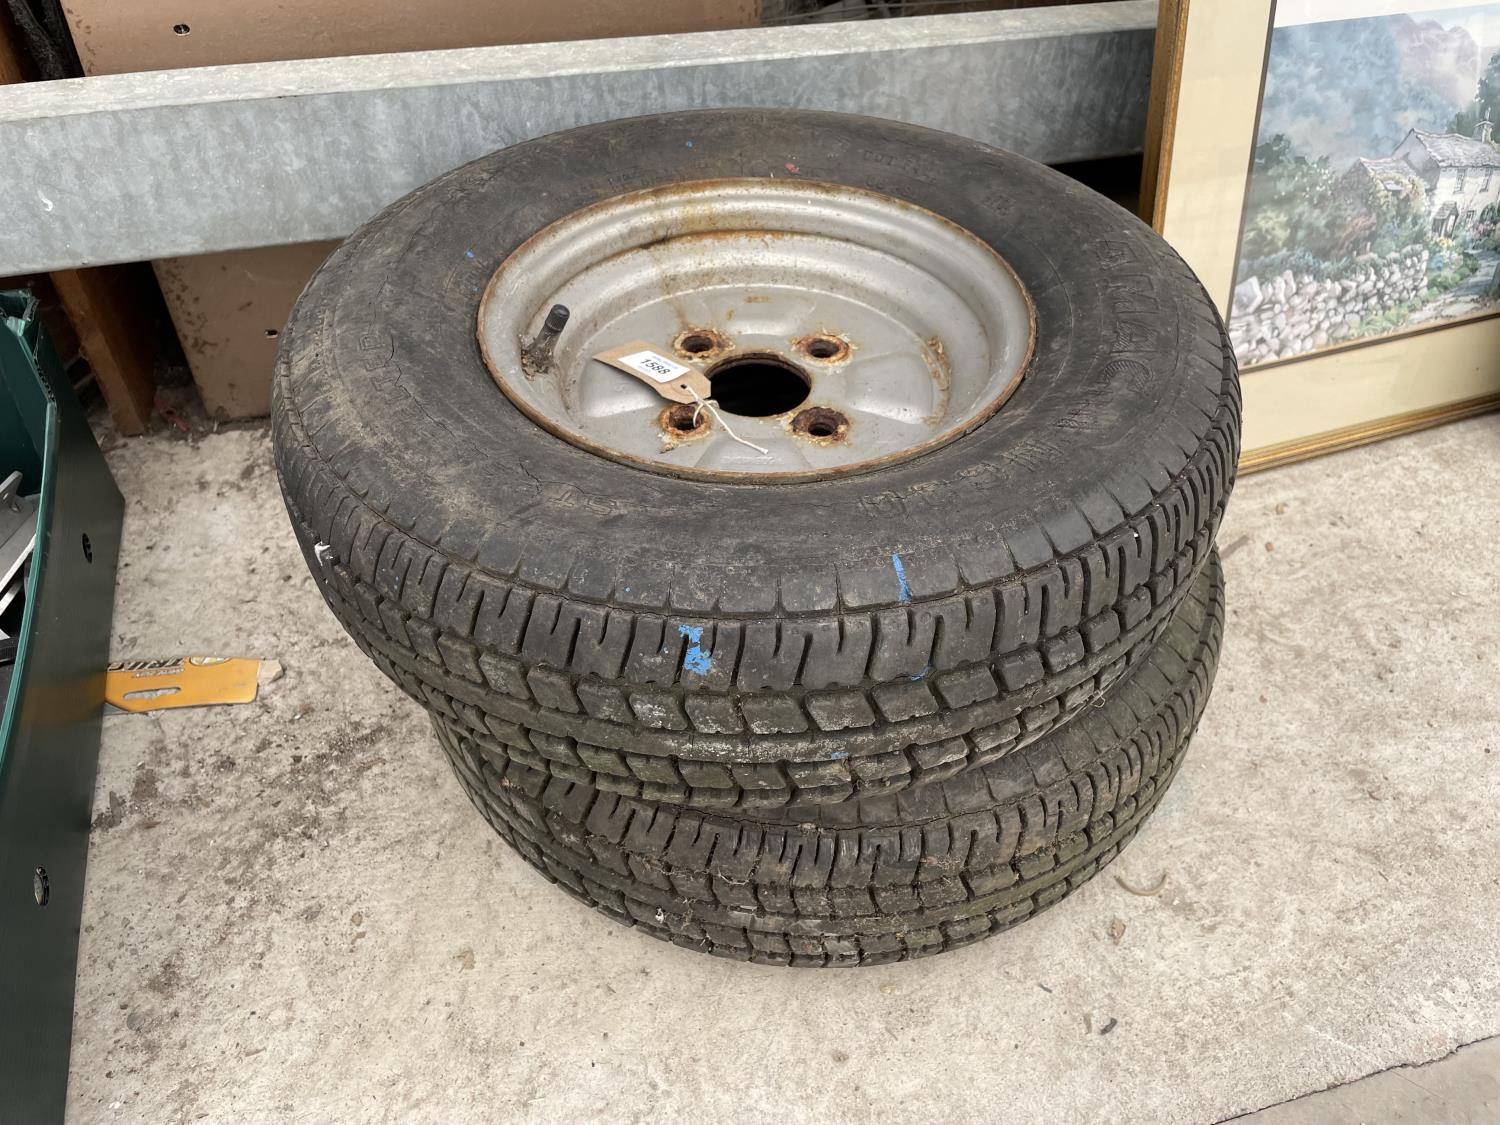 A PAIR OF FOUR STUDDED RIMS WITH TYRES